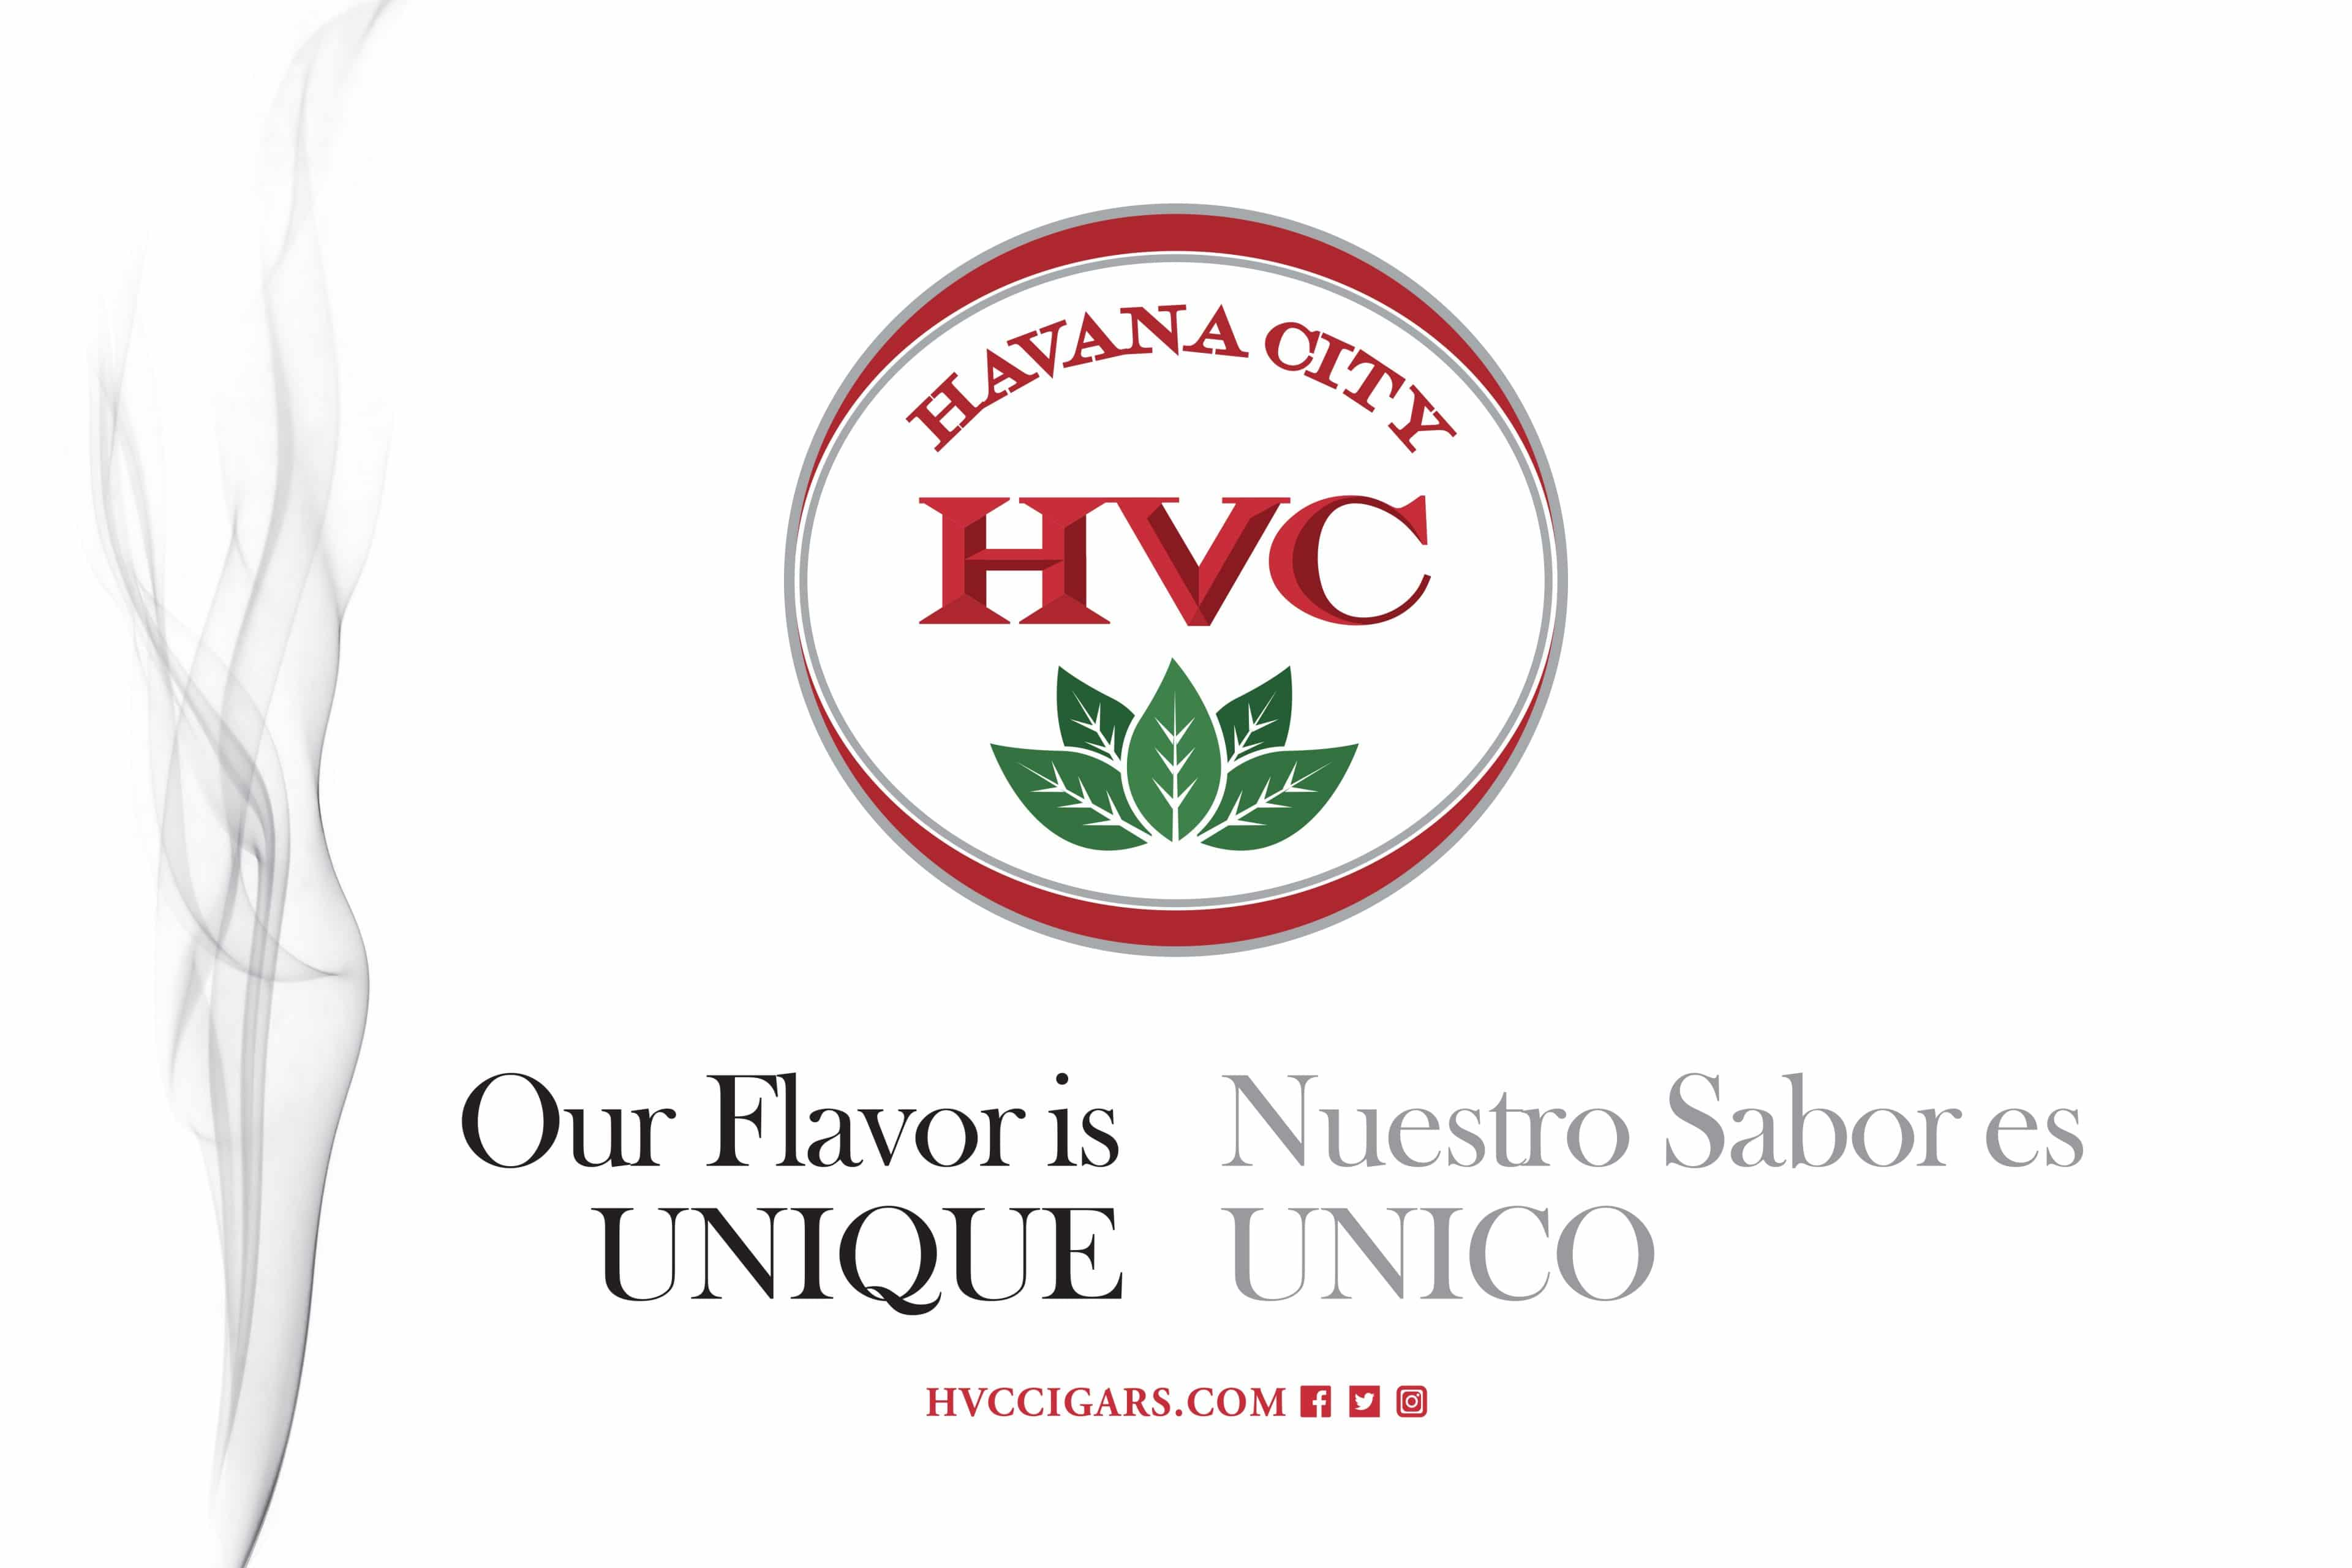 HVC Opens New Headquarters, Will Distribute Own Cigars - Cigar News